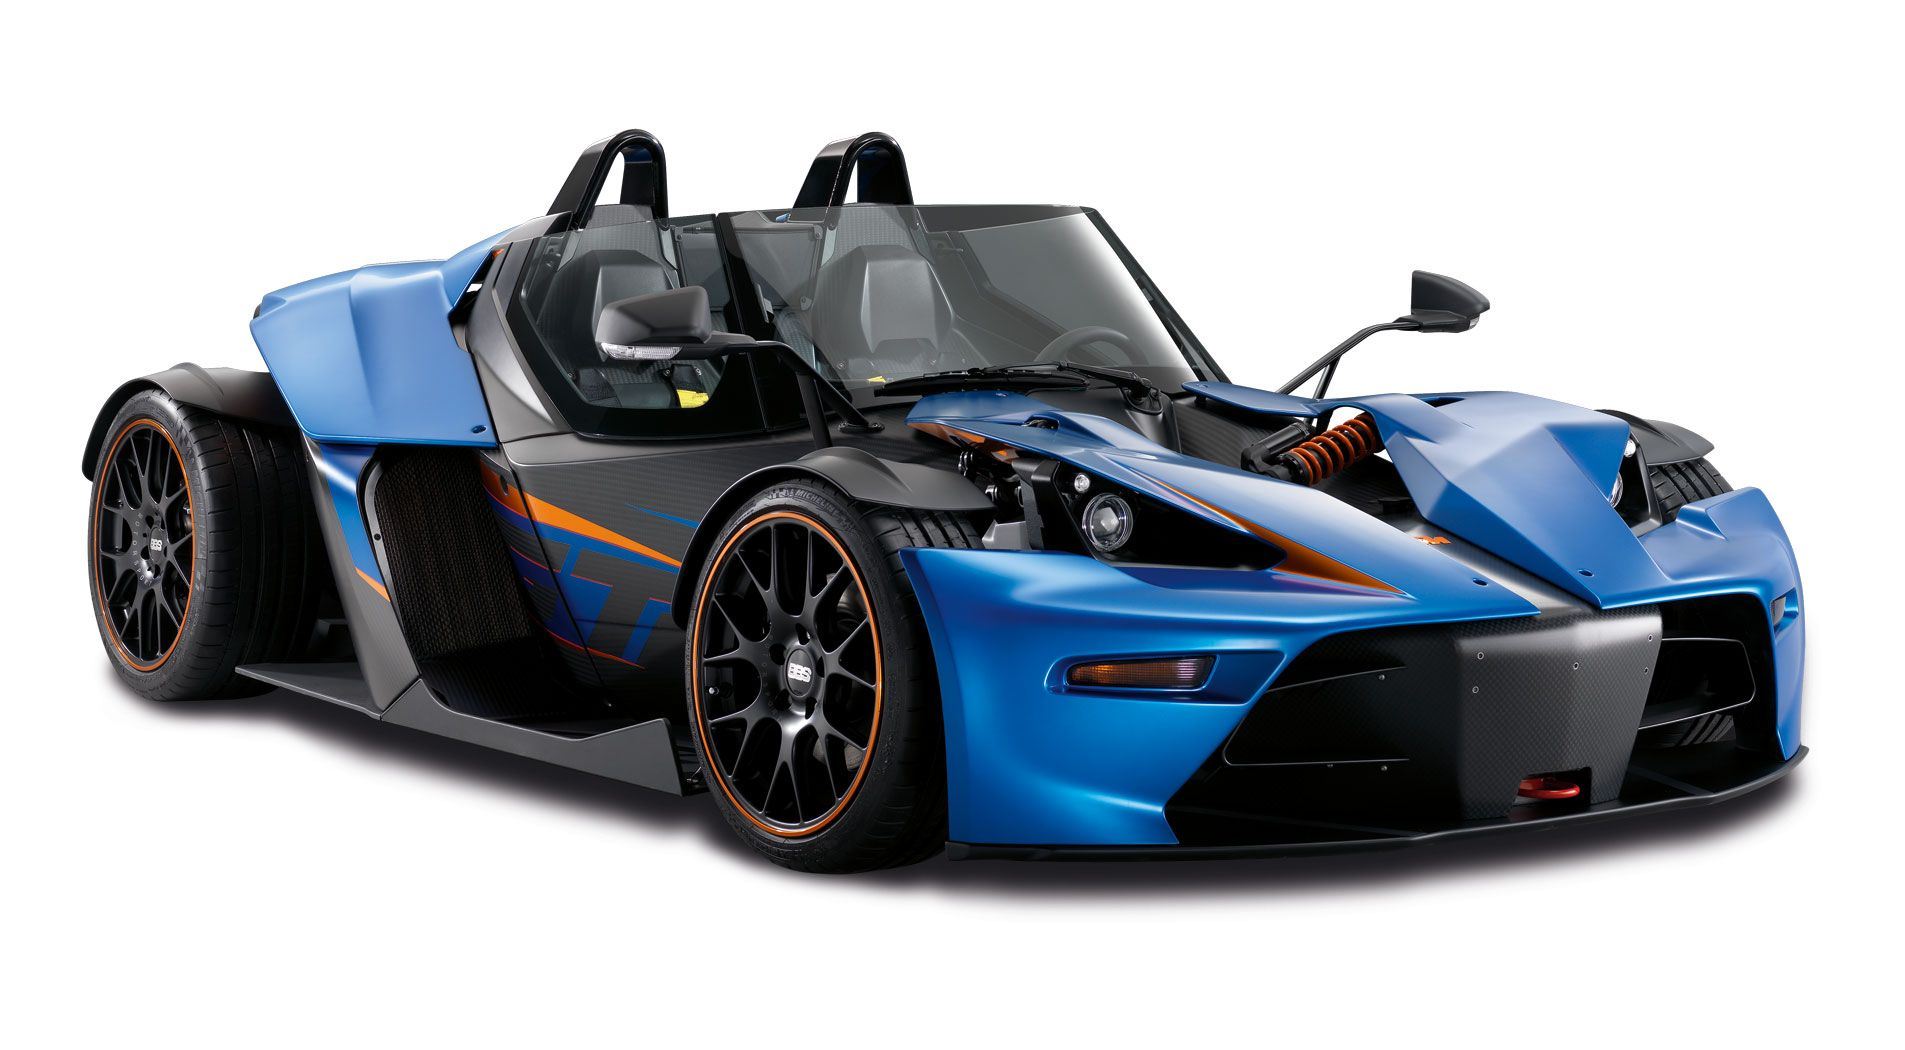 The KTM X bow GT is a newer more refined version of the normal x